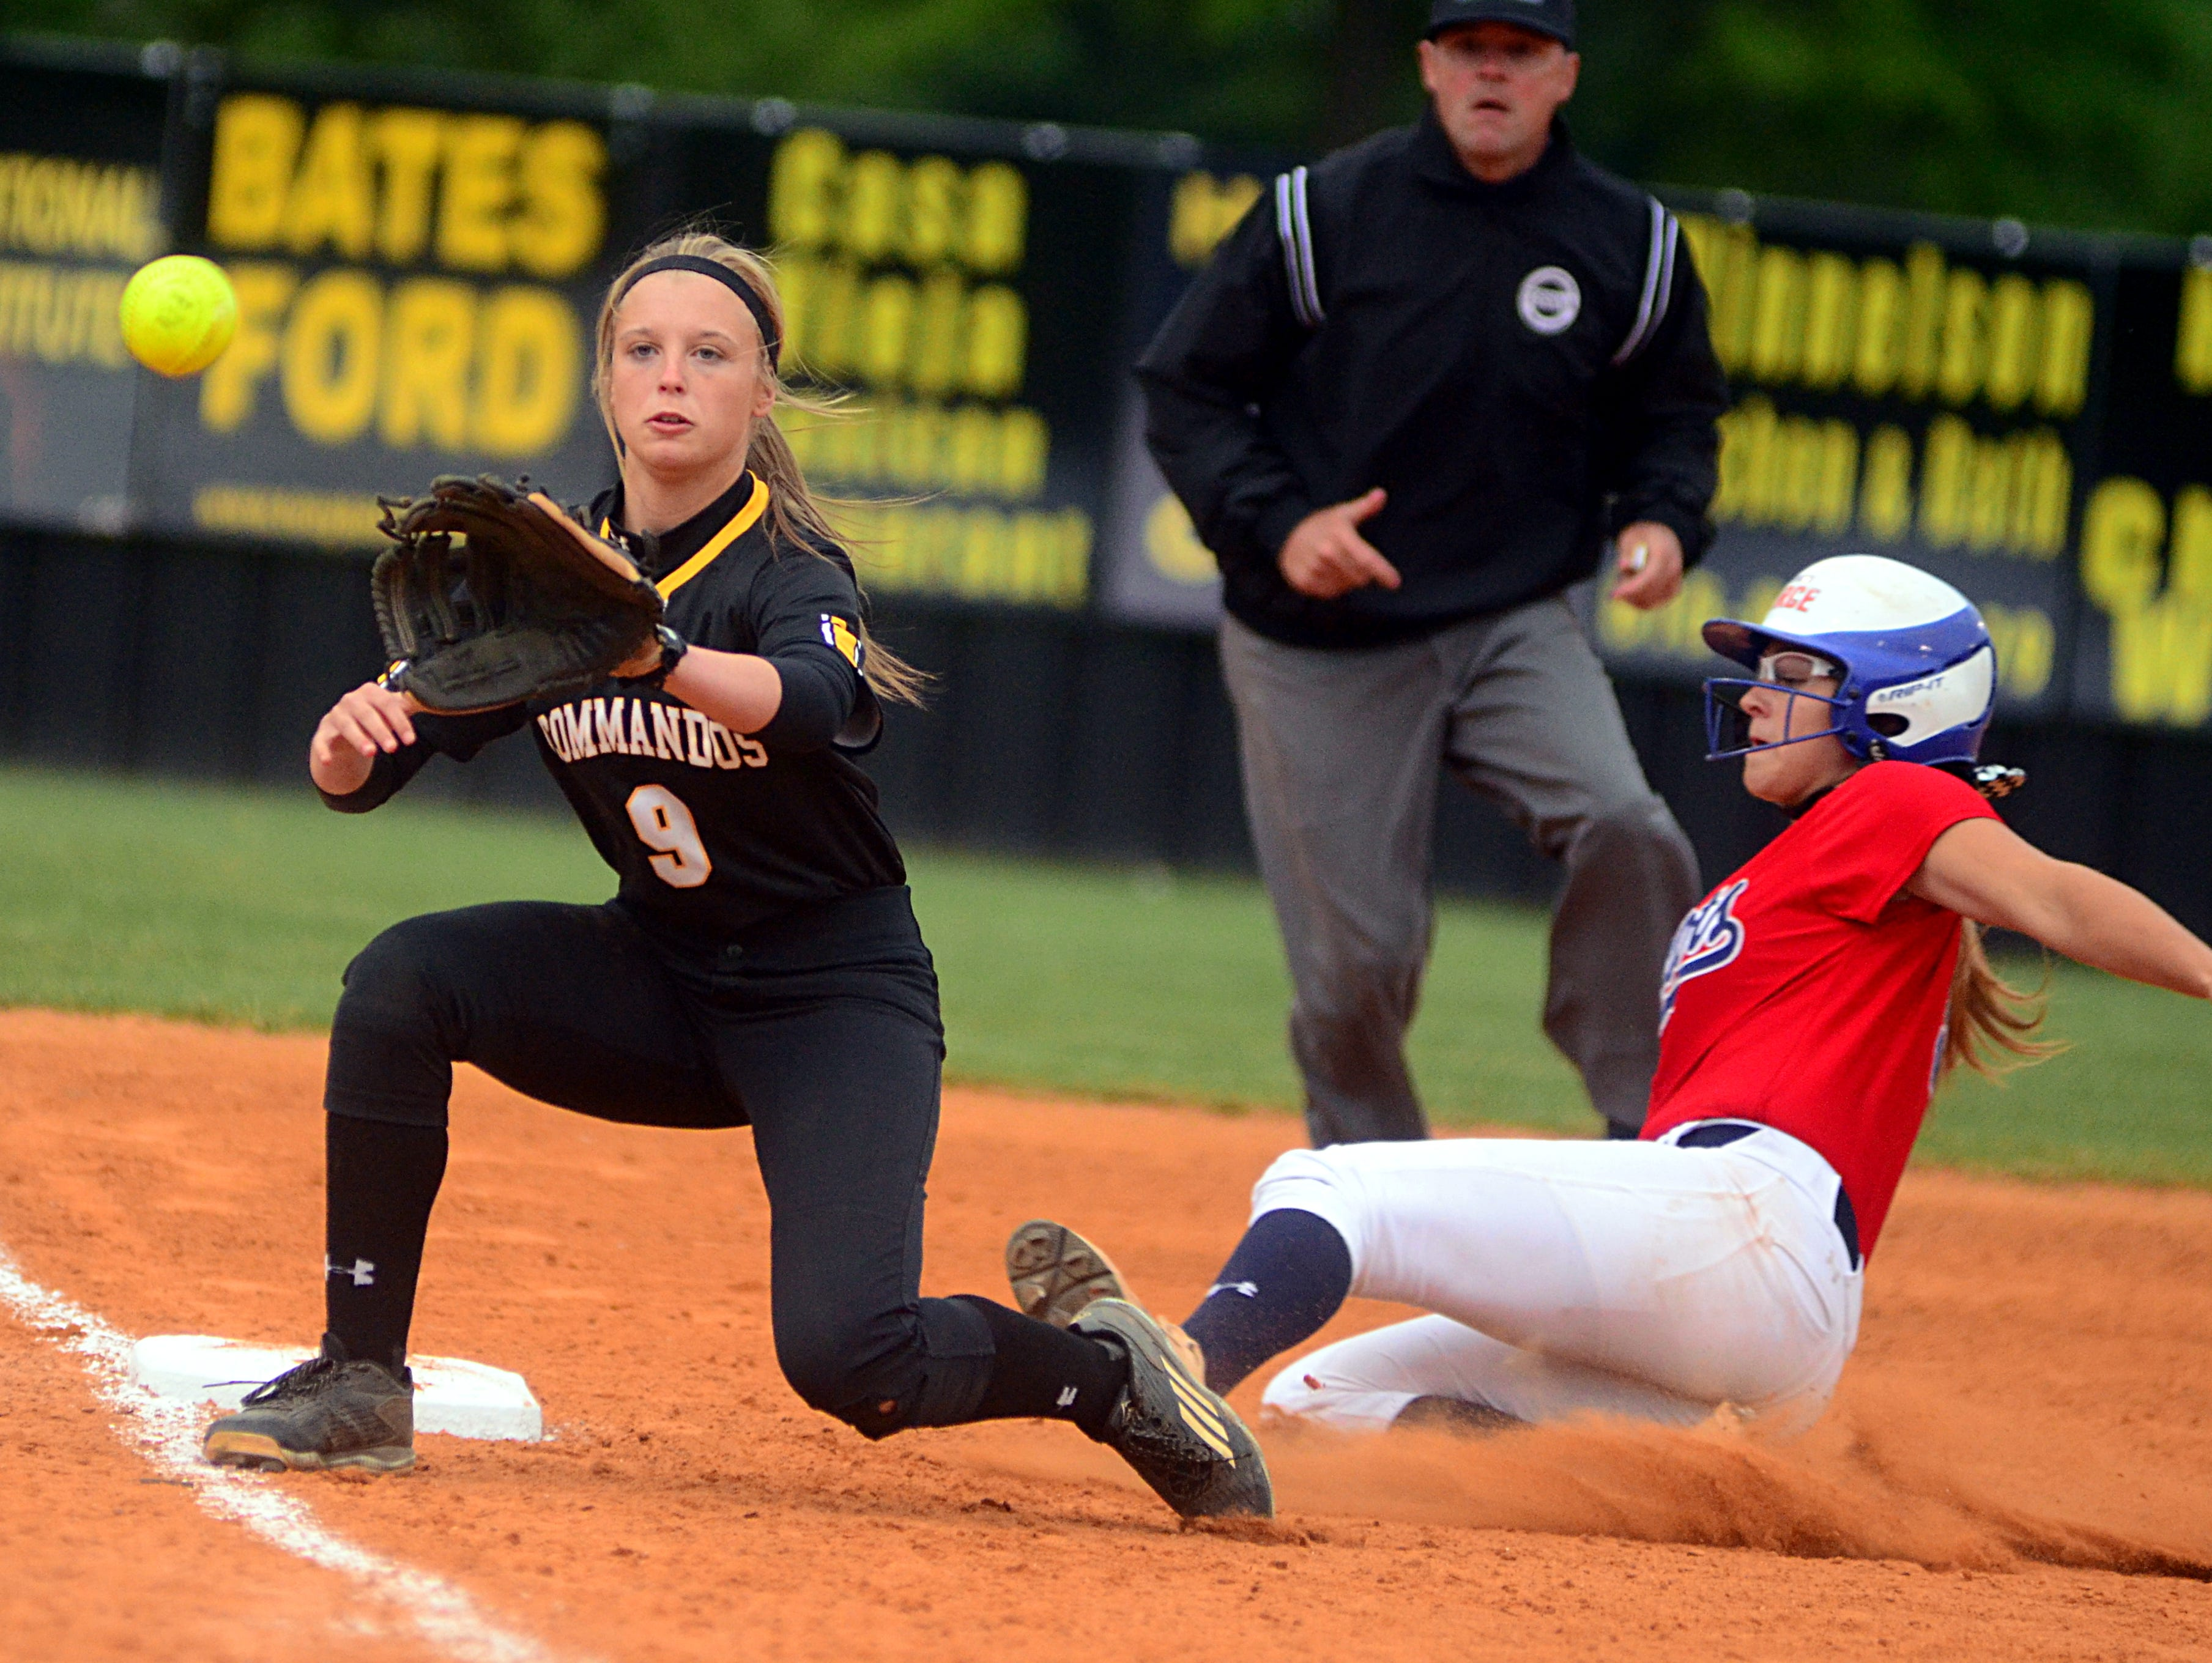 Hendersonville High junior third baseman M.J. Mattei receives a throw as Henry County sophomore Gracie Osbron slides into third base during the first inning of the Lady Commandos' 5-2 victory on Monday evening.